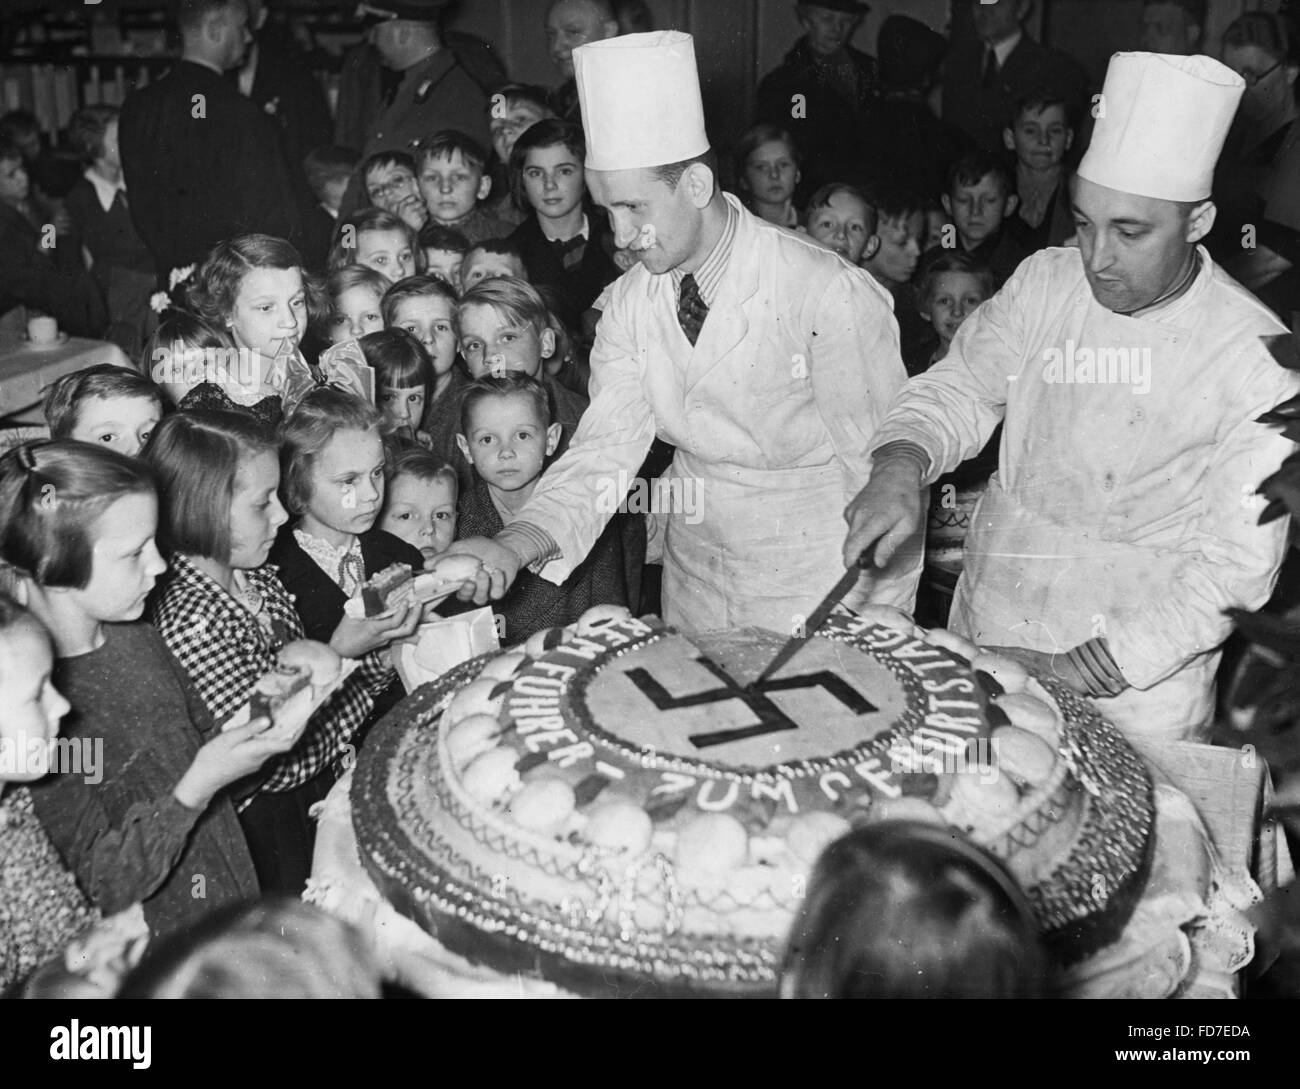 The birthday cake of Adolf Hitler is shared with children,1939 Stock Photo